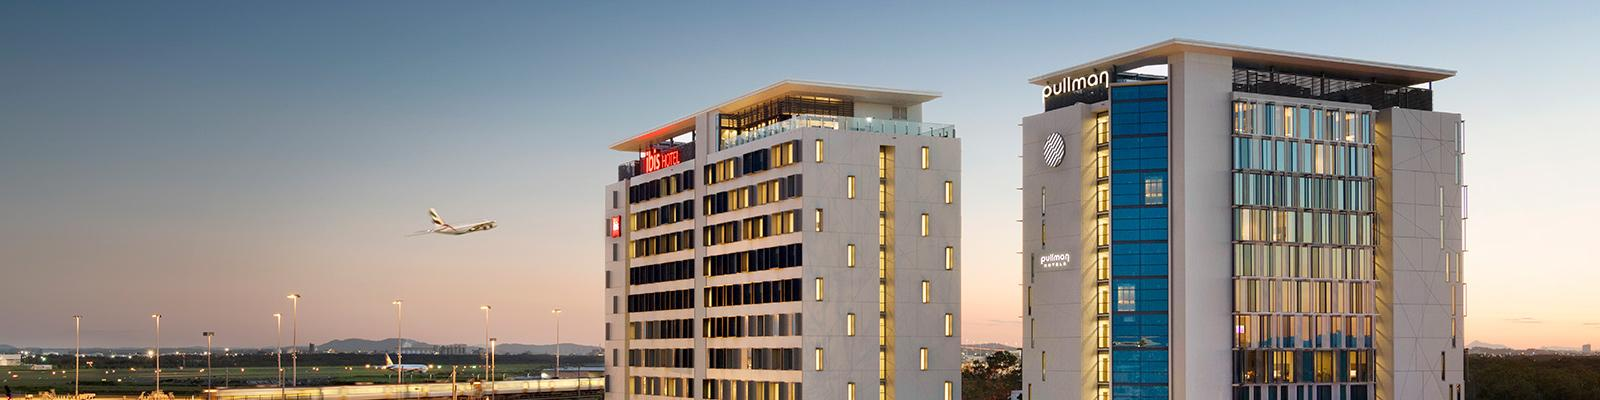 Pullman and Ibis Hotel at Brisbane Airport